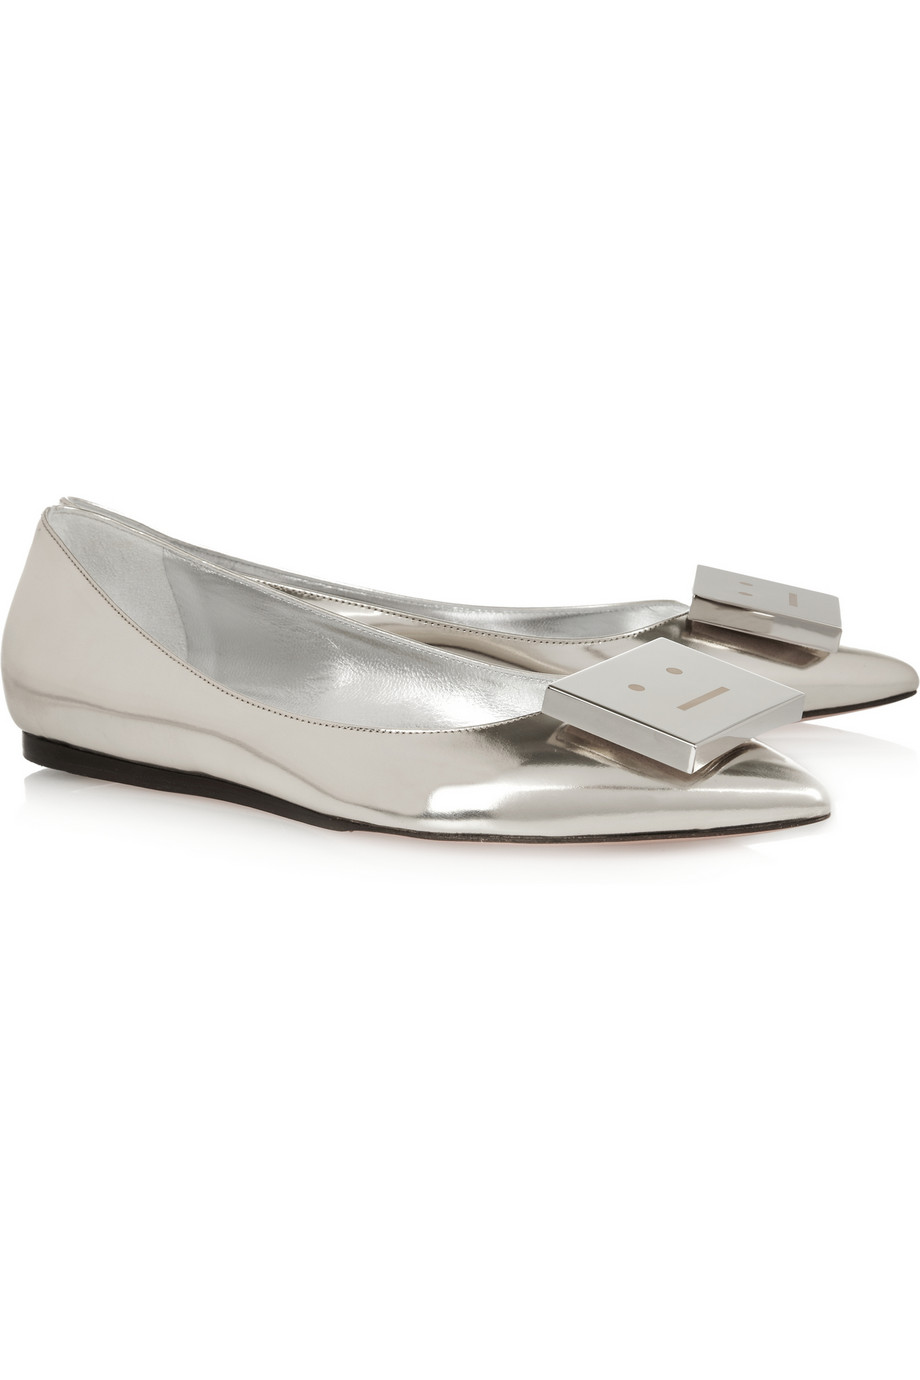 Acne Studios metallic leather point-toe flats